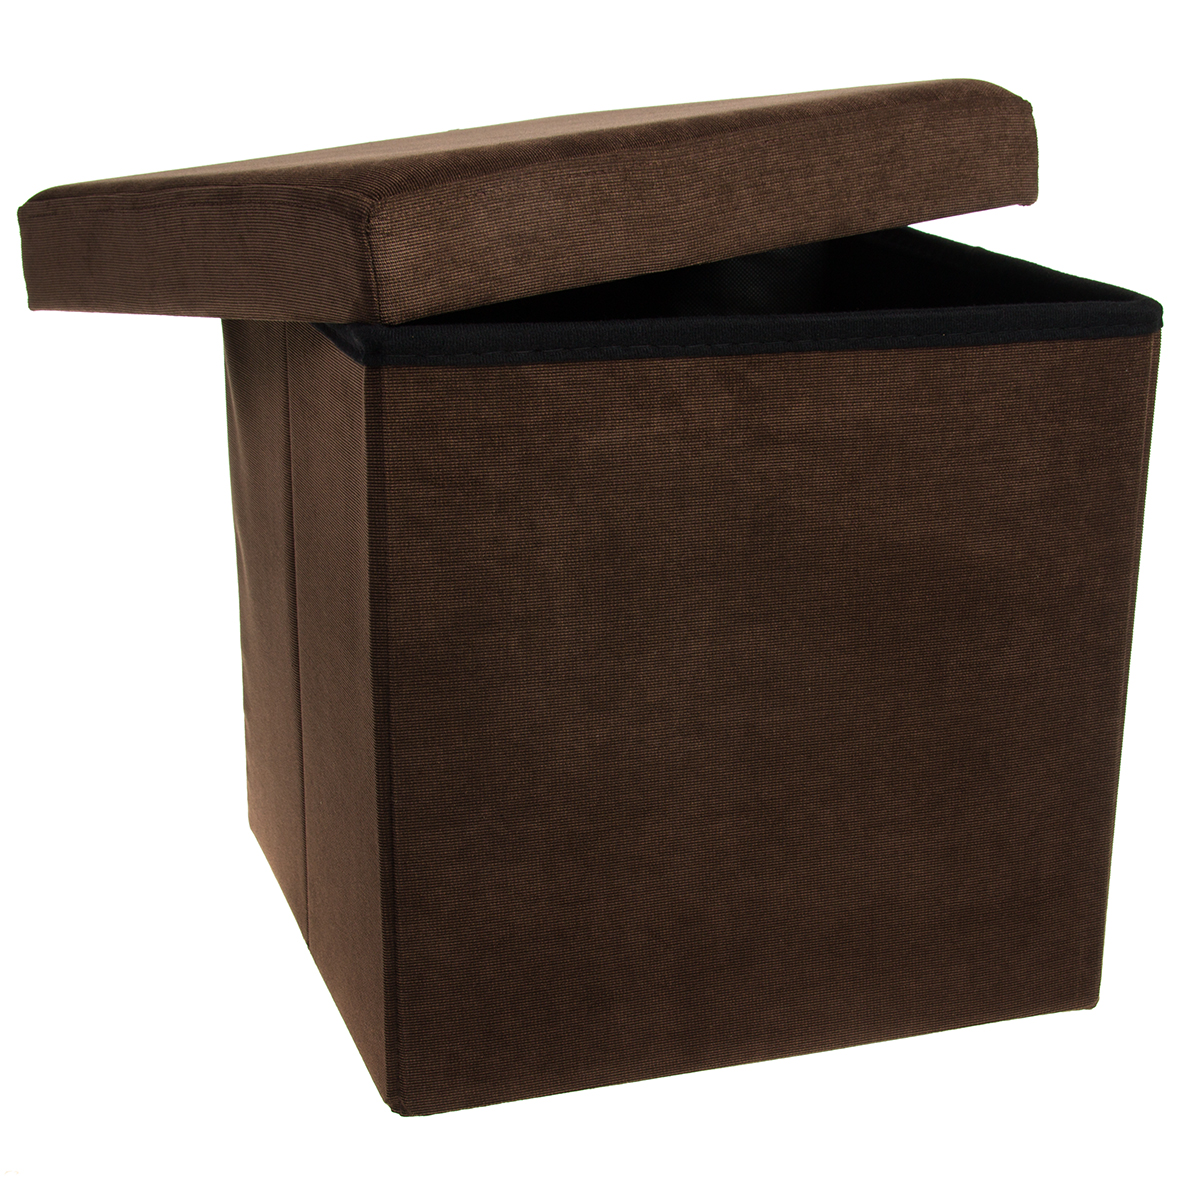 Storage Ottoman Cube Folding Fabric Square Foot Rest Coffee Table Collapsible Ebay